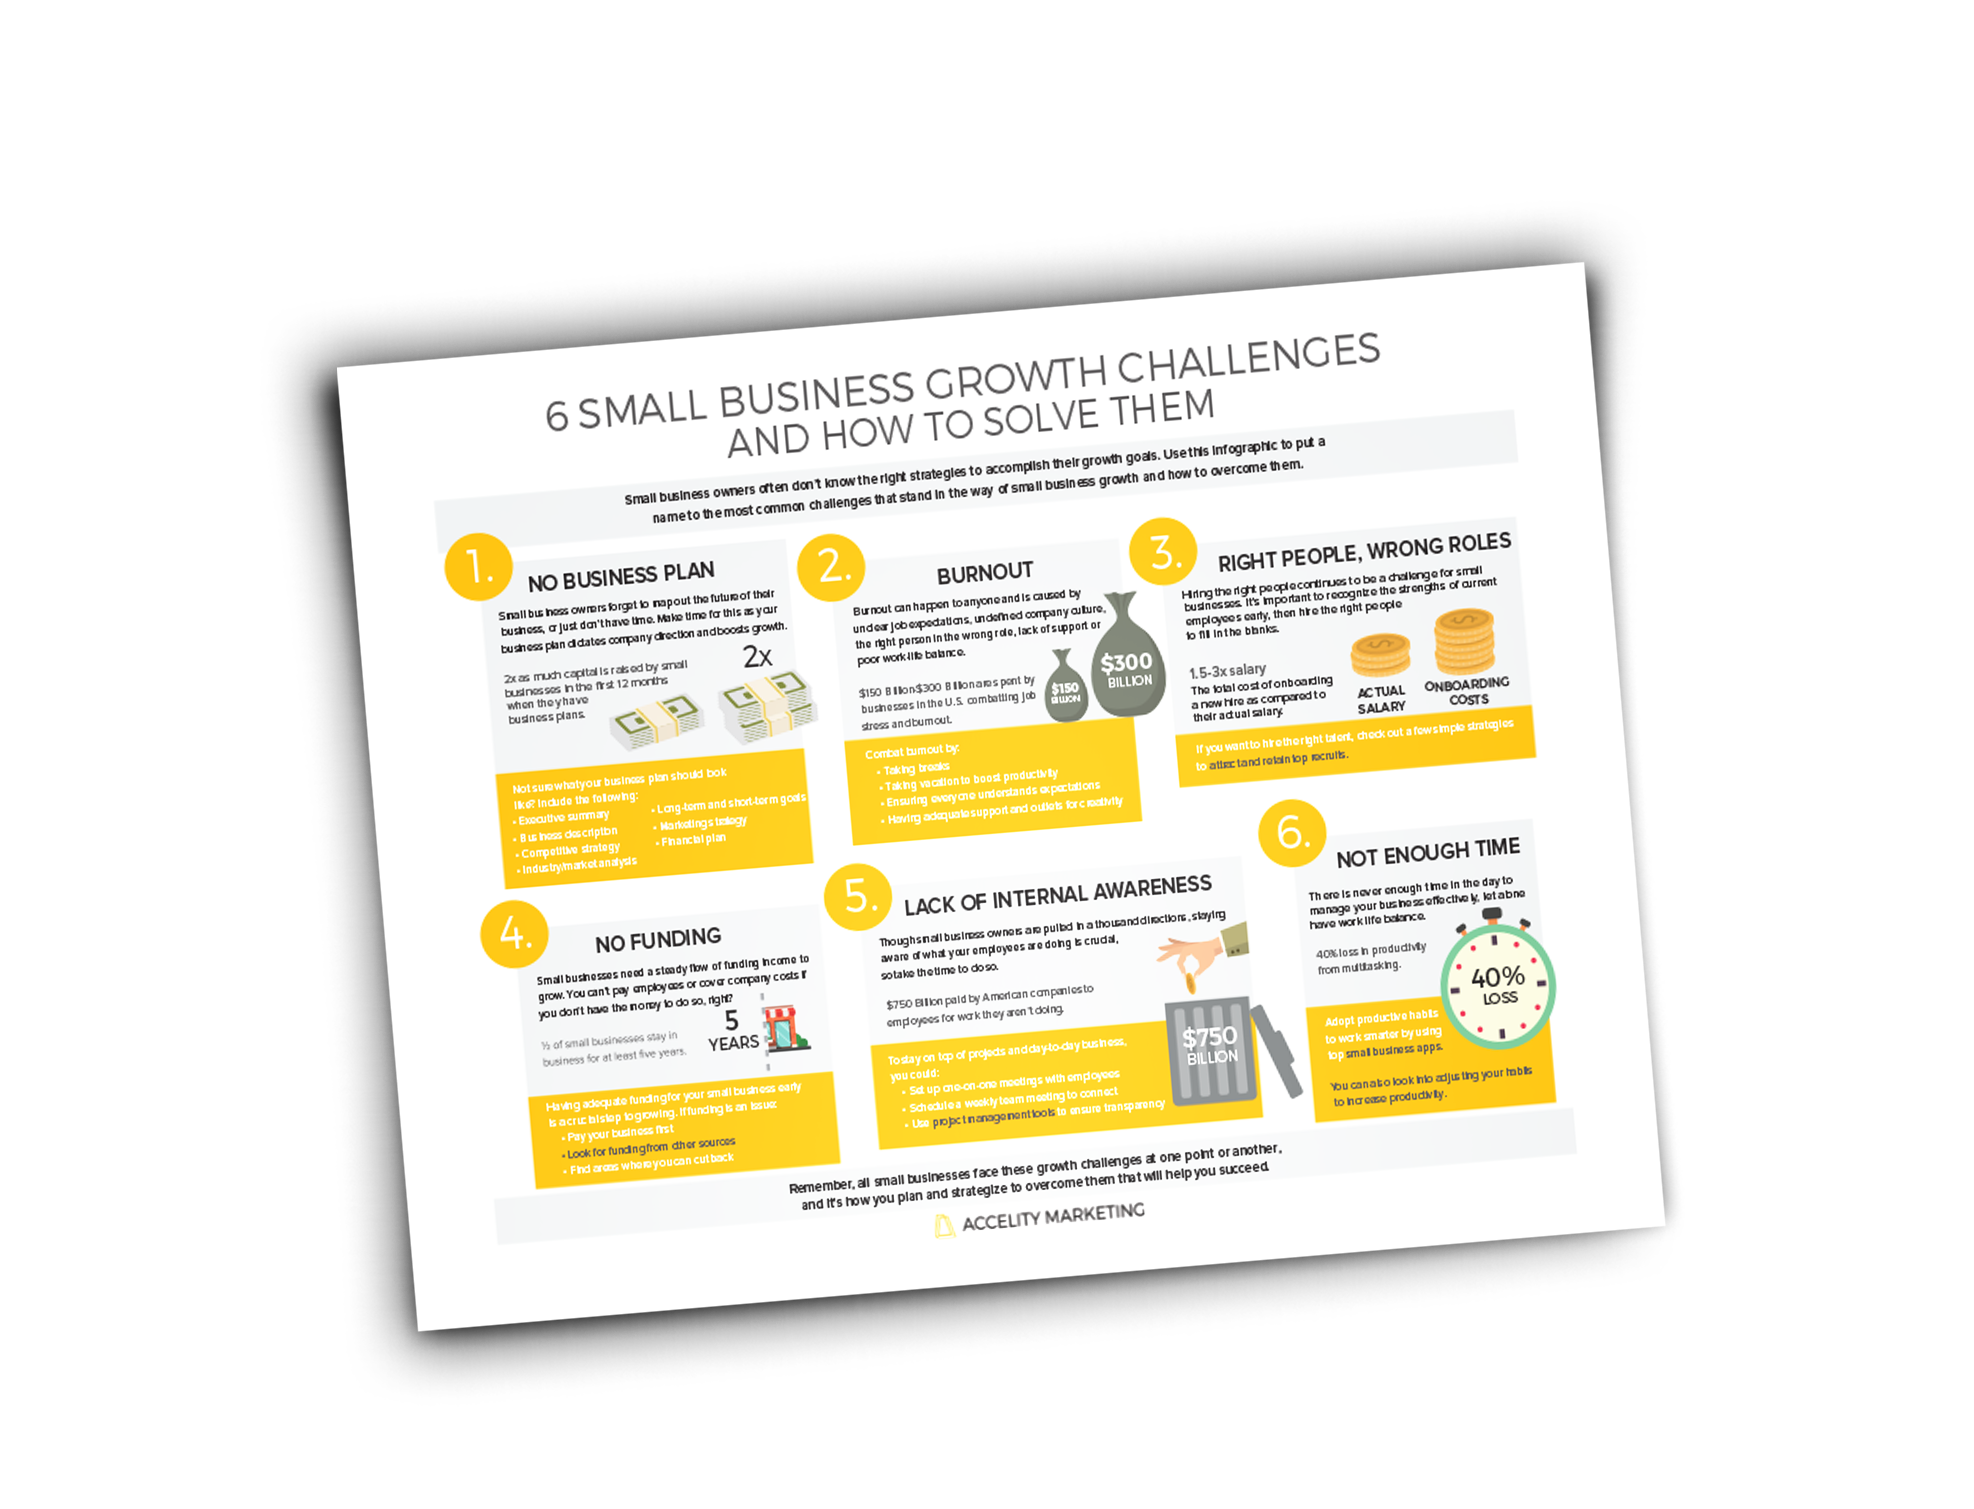 ACC_Offers_SmallBusinessGrowhtChallenges_1PAGE